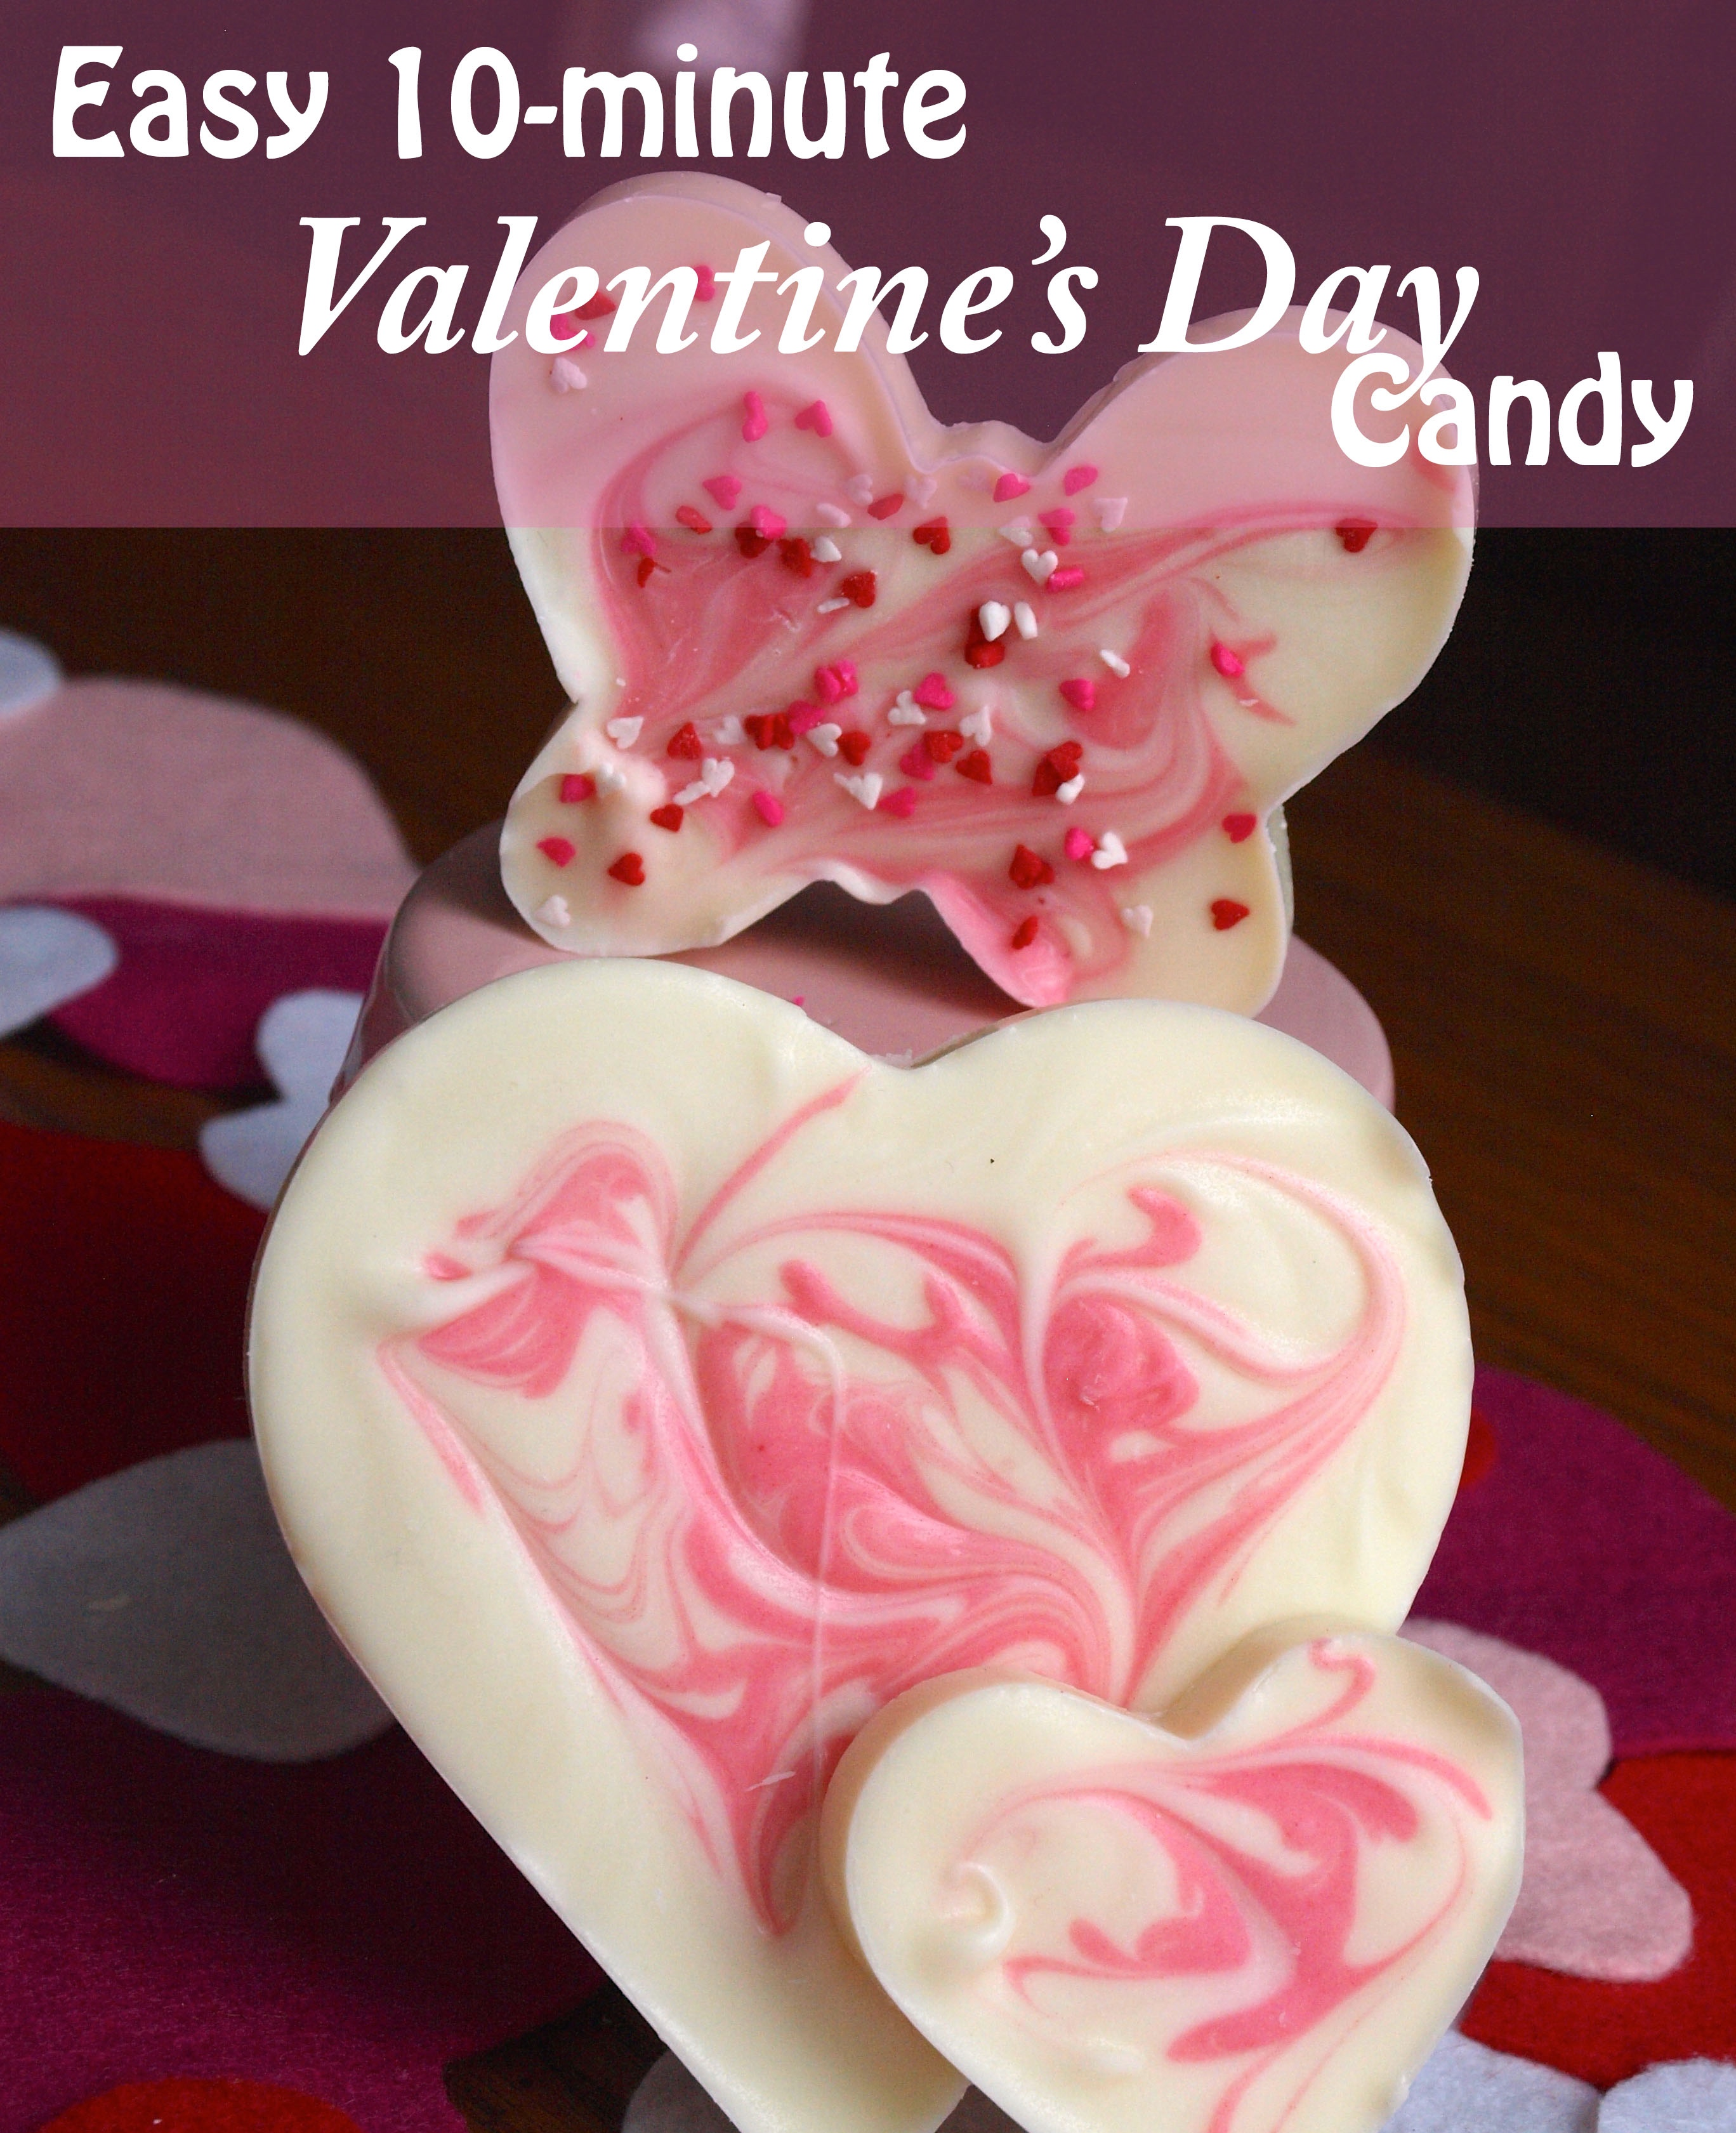 Easy Valentine's Candy Recipe - createwithclaudia.com